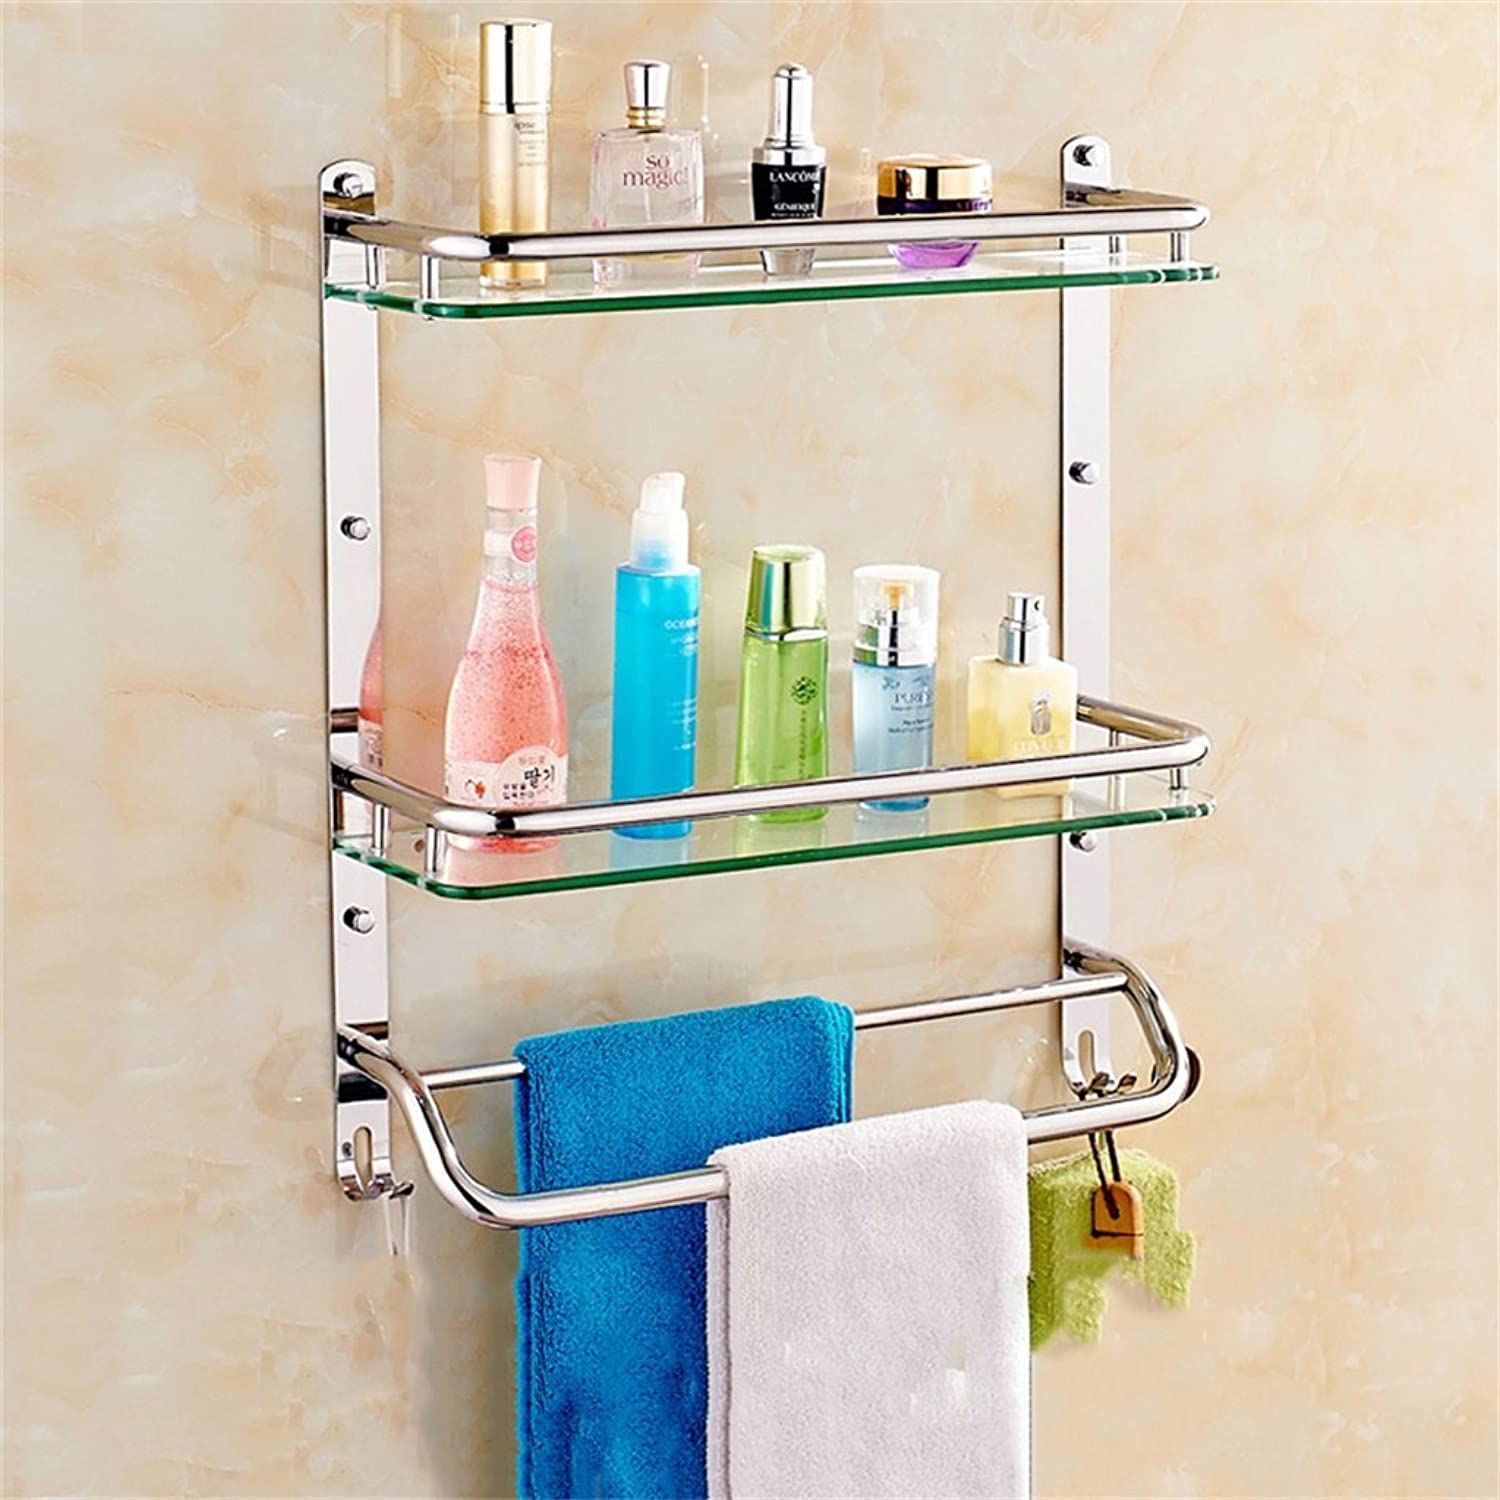 Bathroom Shelf Stainless Steel Bathroom Shelf Glass Bathroom Wall mountings Safety Rounded Corners (color   51  56CM)